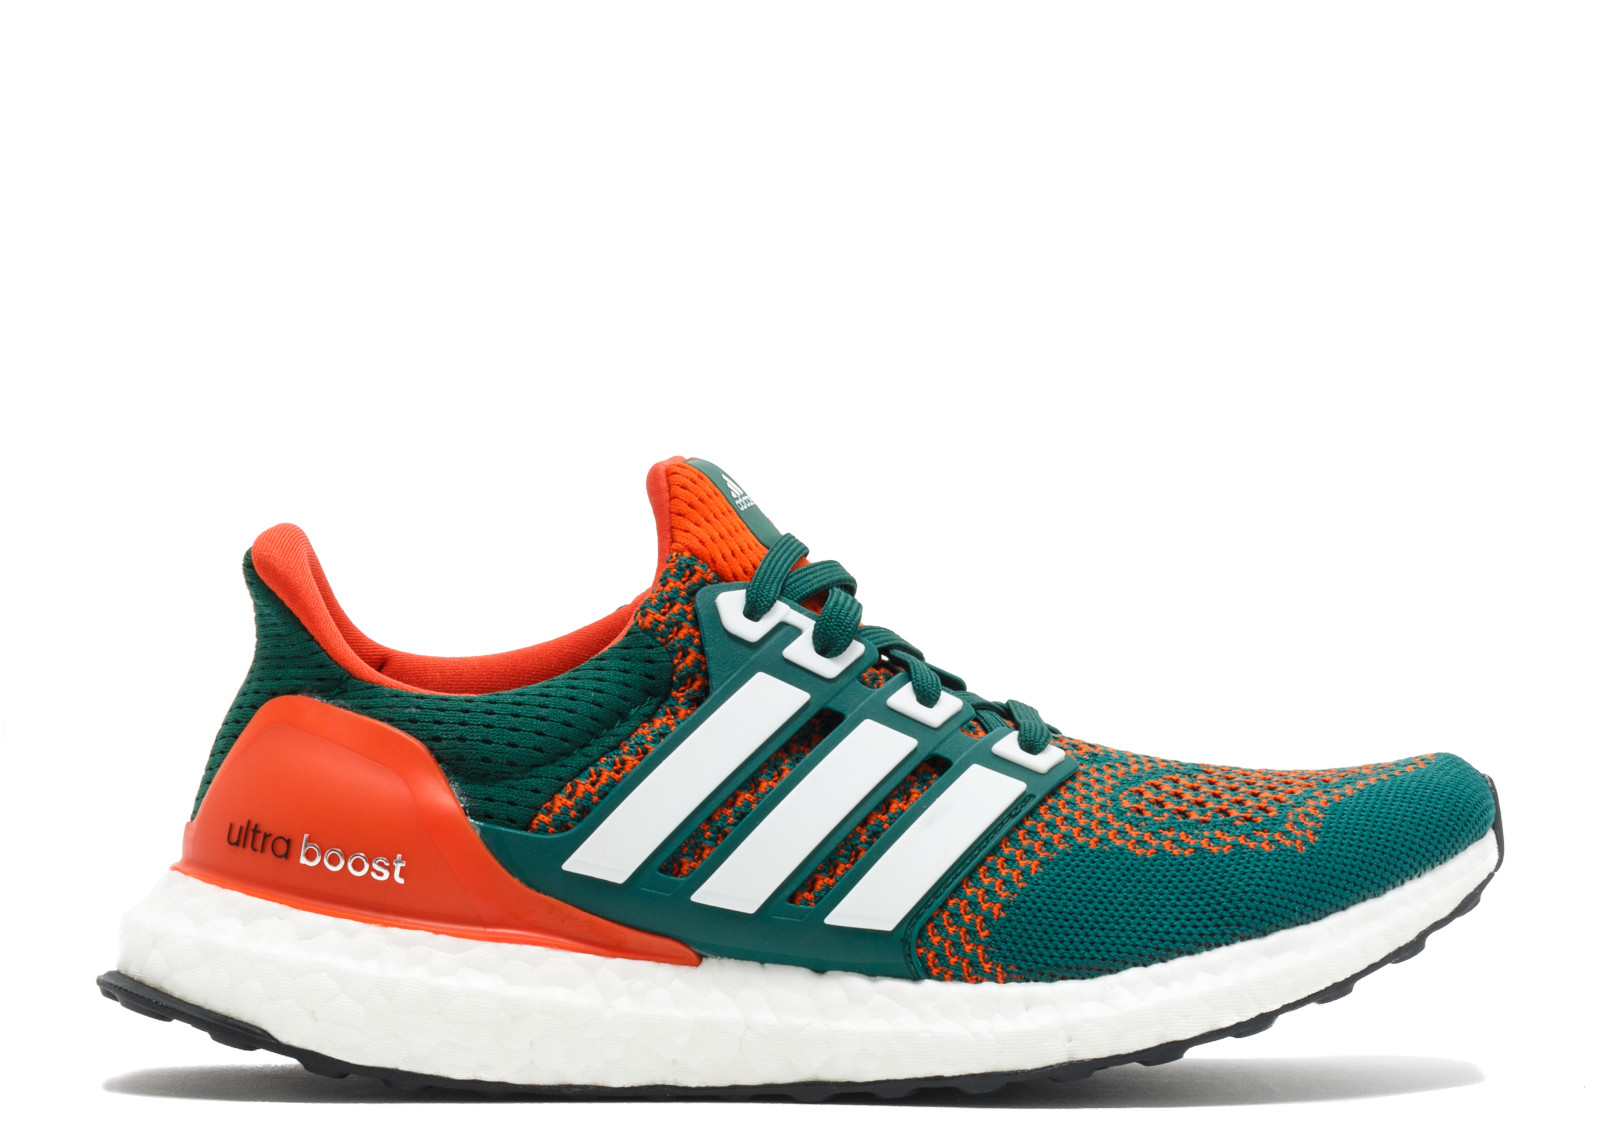 University Of Miami Hurricanes >> Adidas Ultra Boost Miami Hurricanes | Sneakerando - The Sneakers Shop